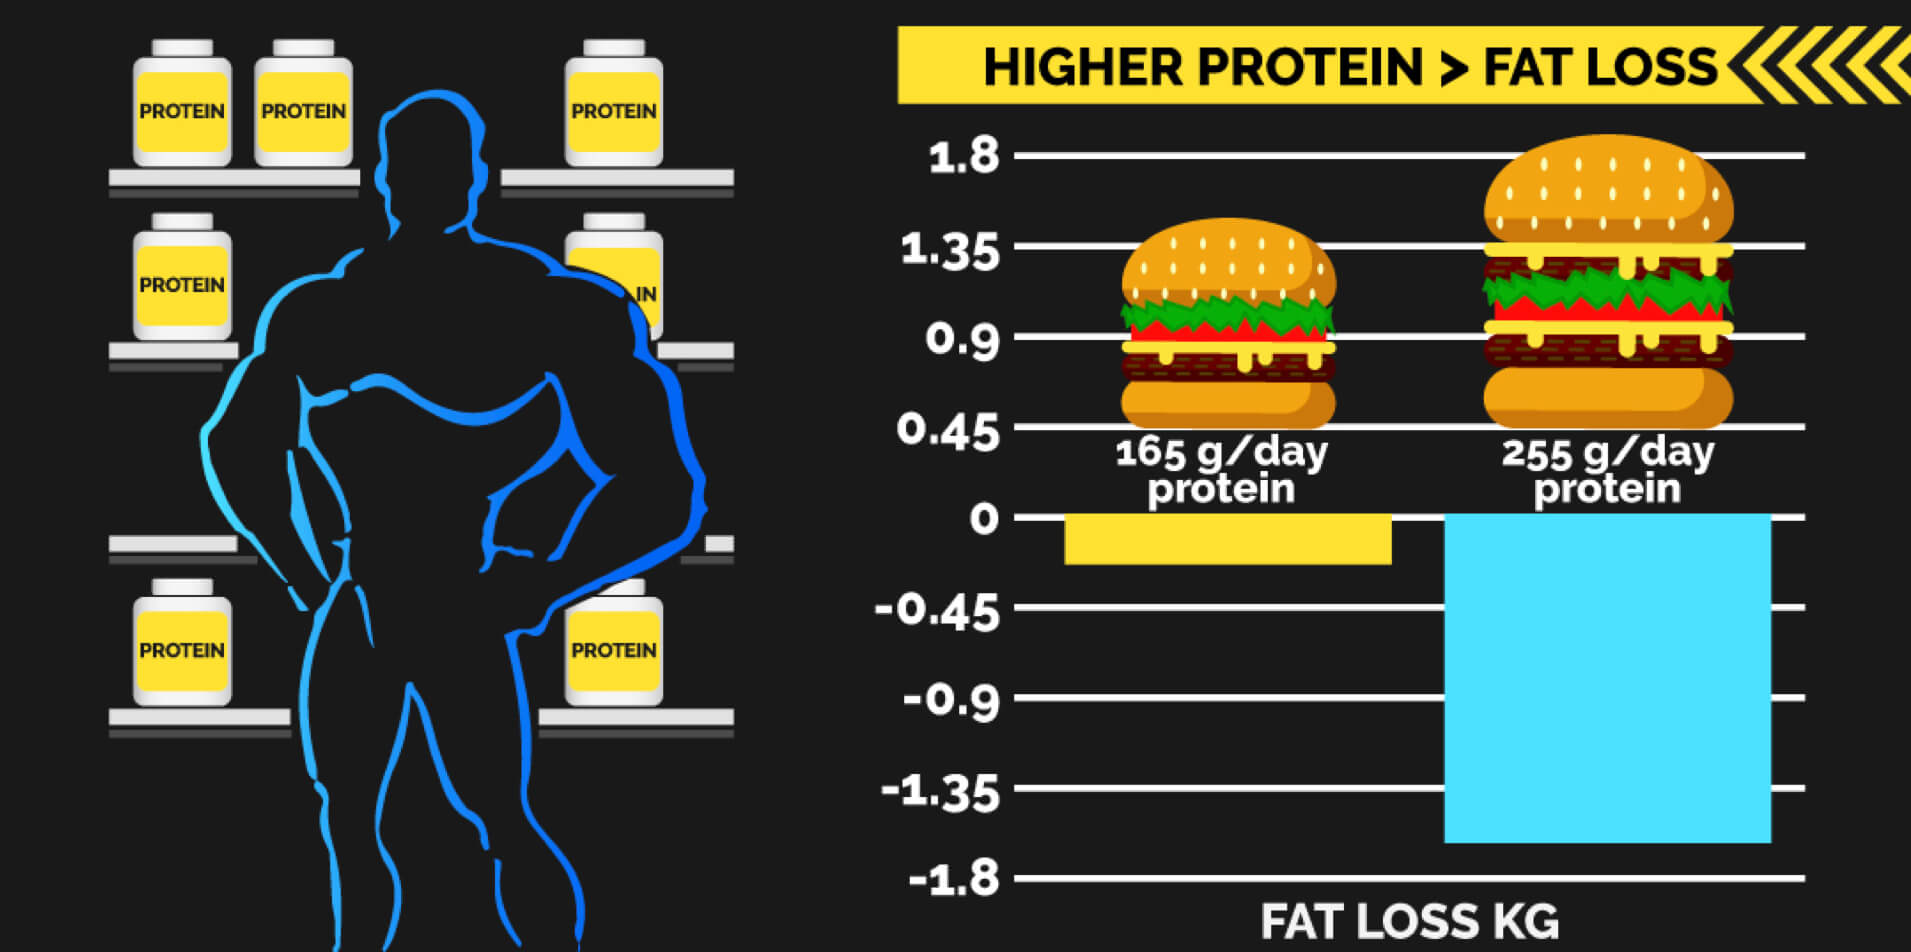 higher-protein-fat-loss